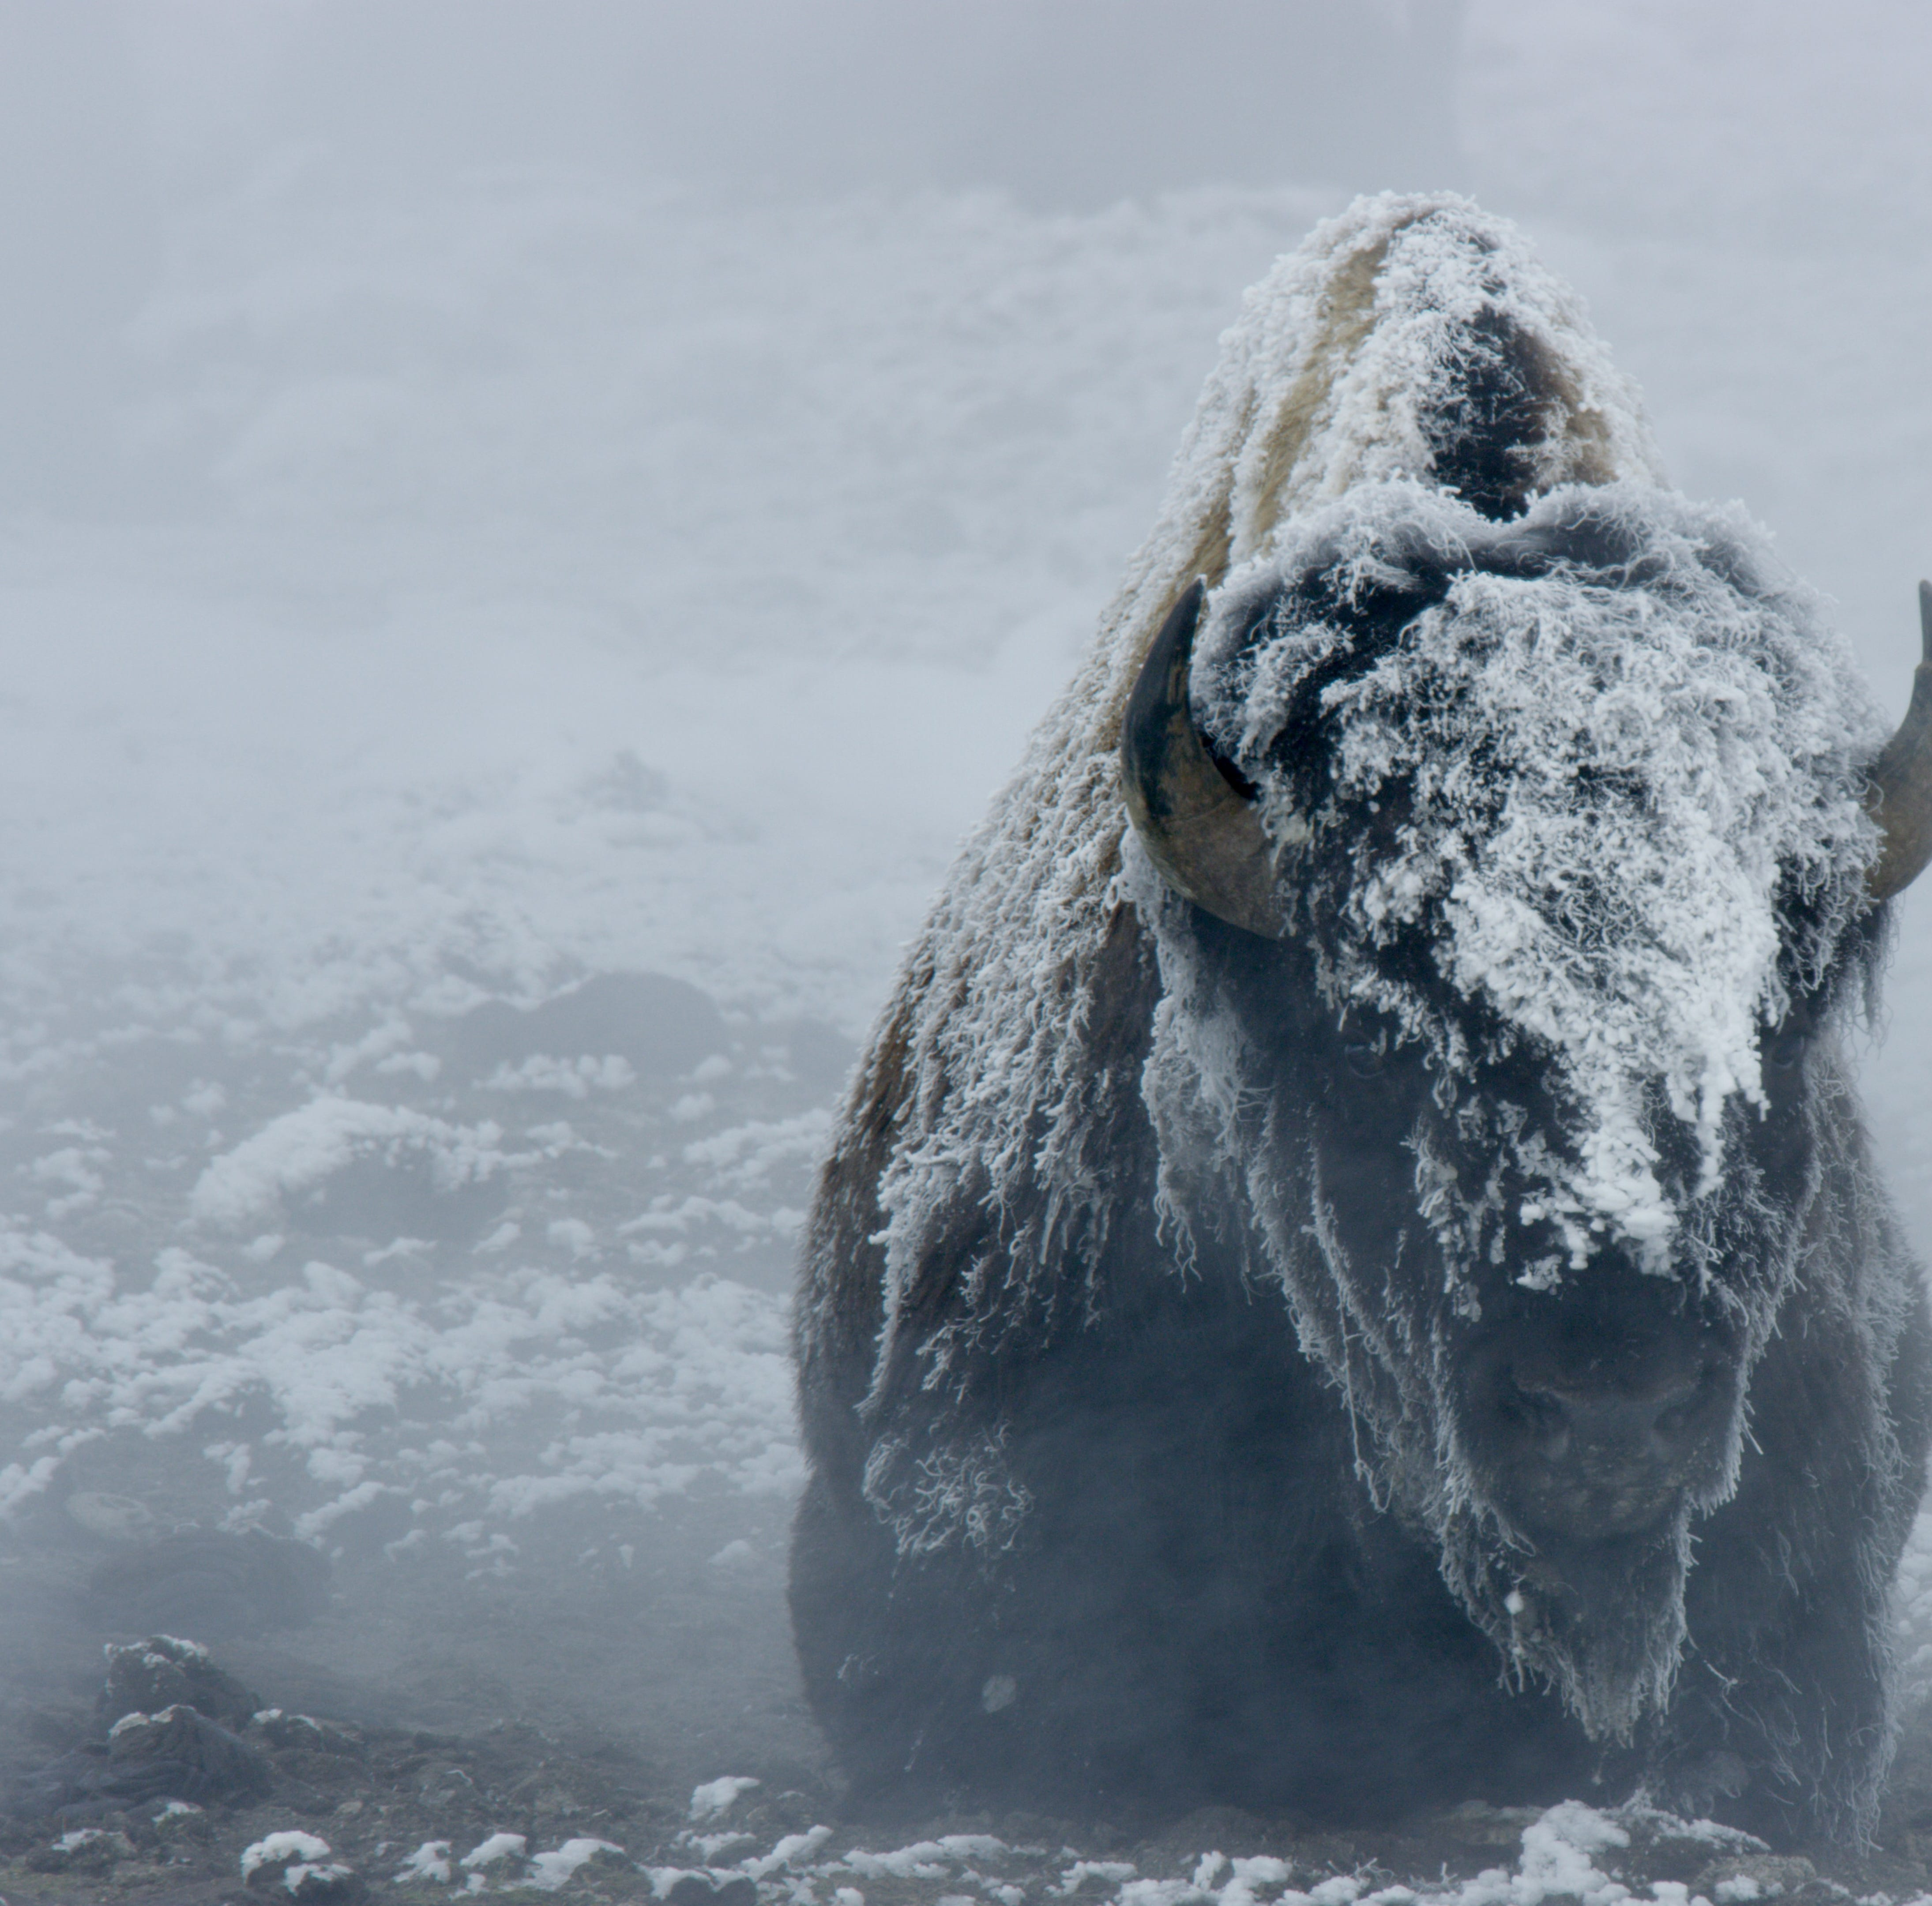 More than 300 Yellowstone National Park bison removed so far